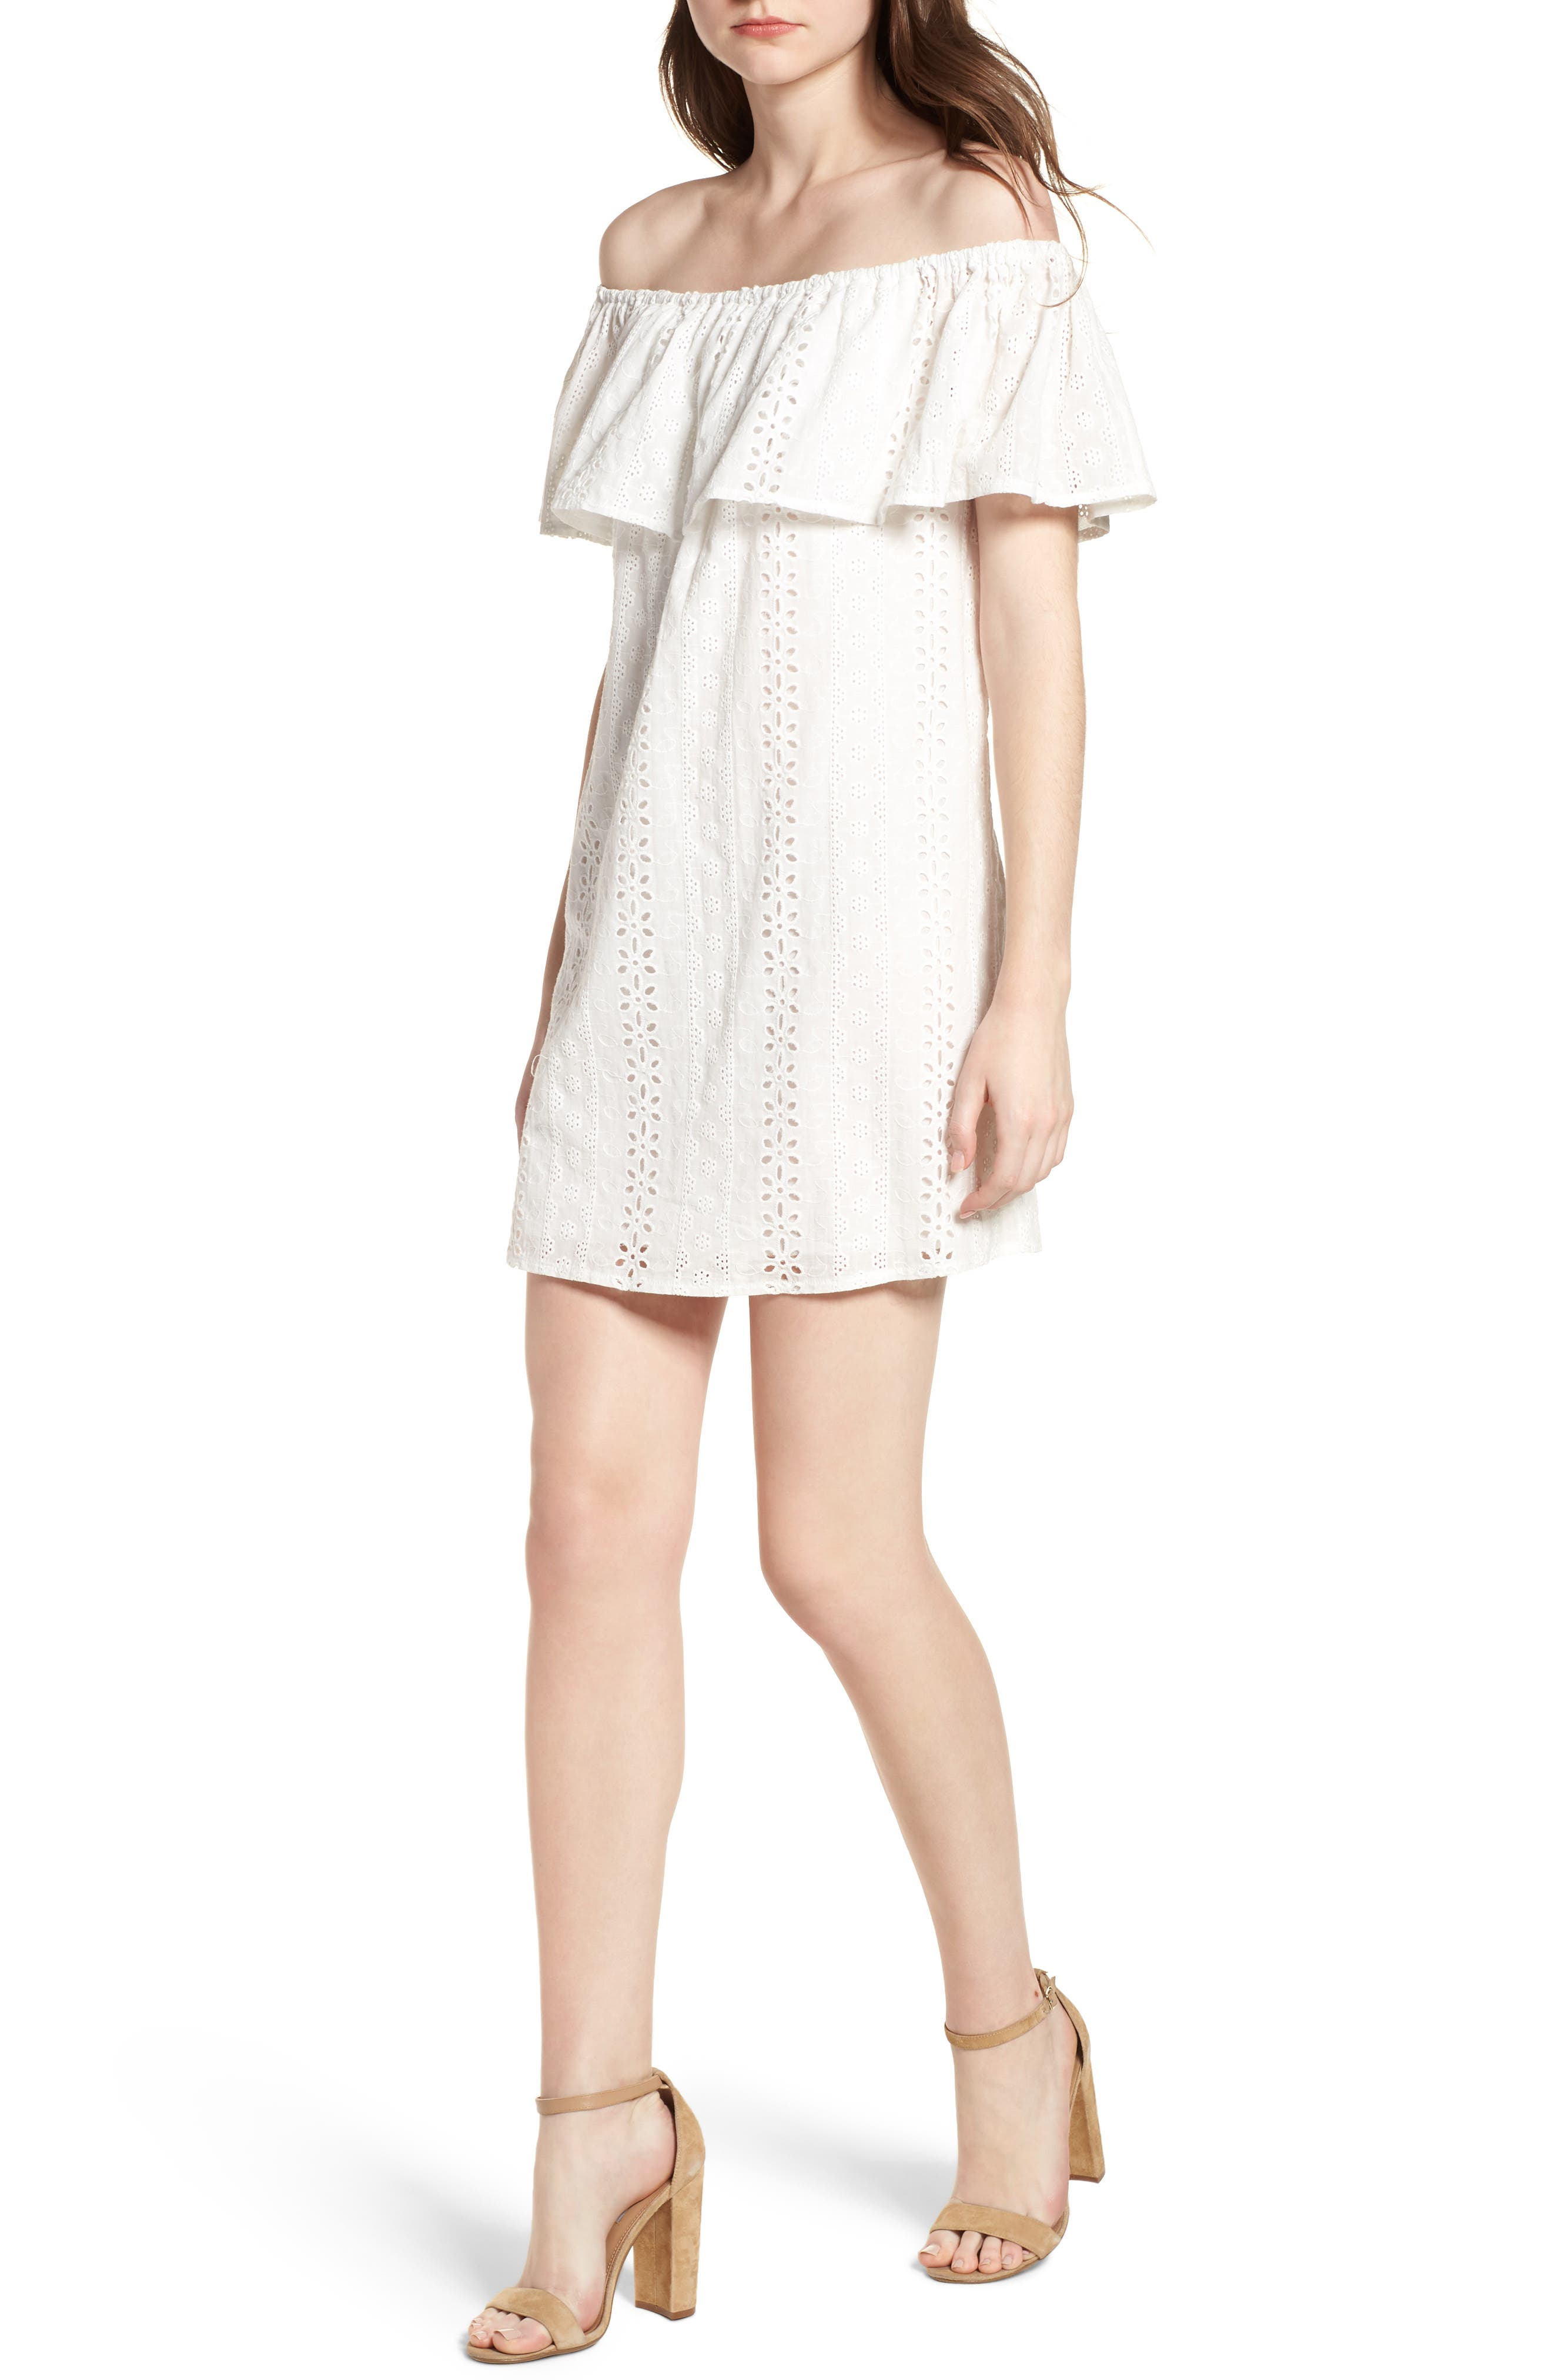 Bishop + Young Eyelet Ruffle Off the Shoulder Dress,                         Main,                         color, White